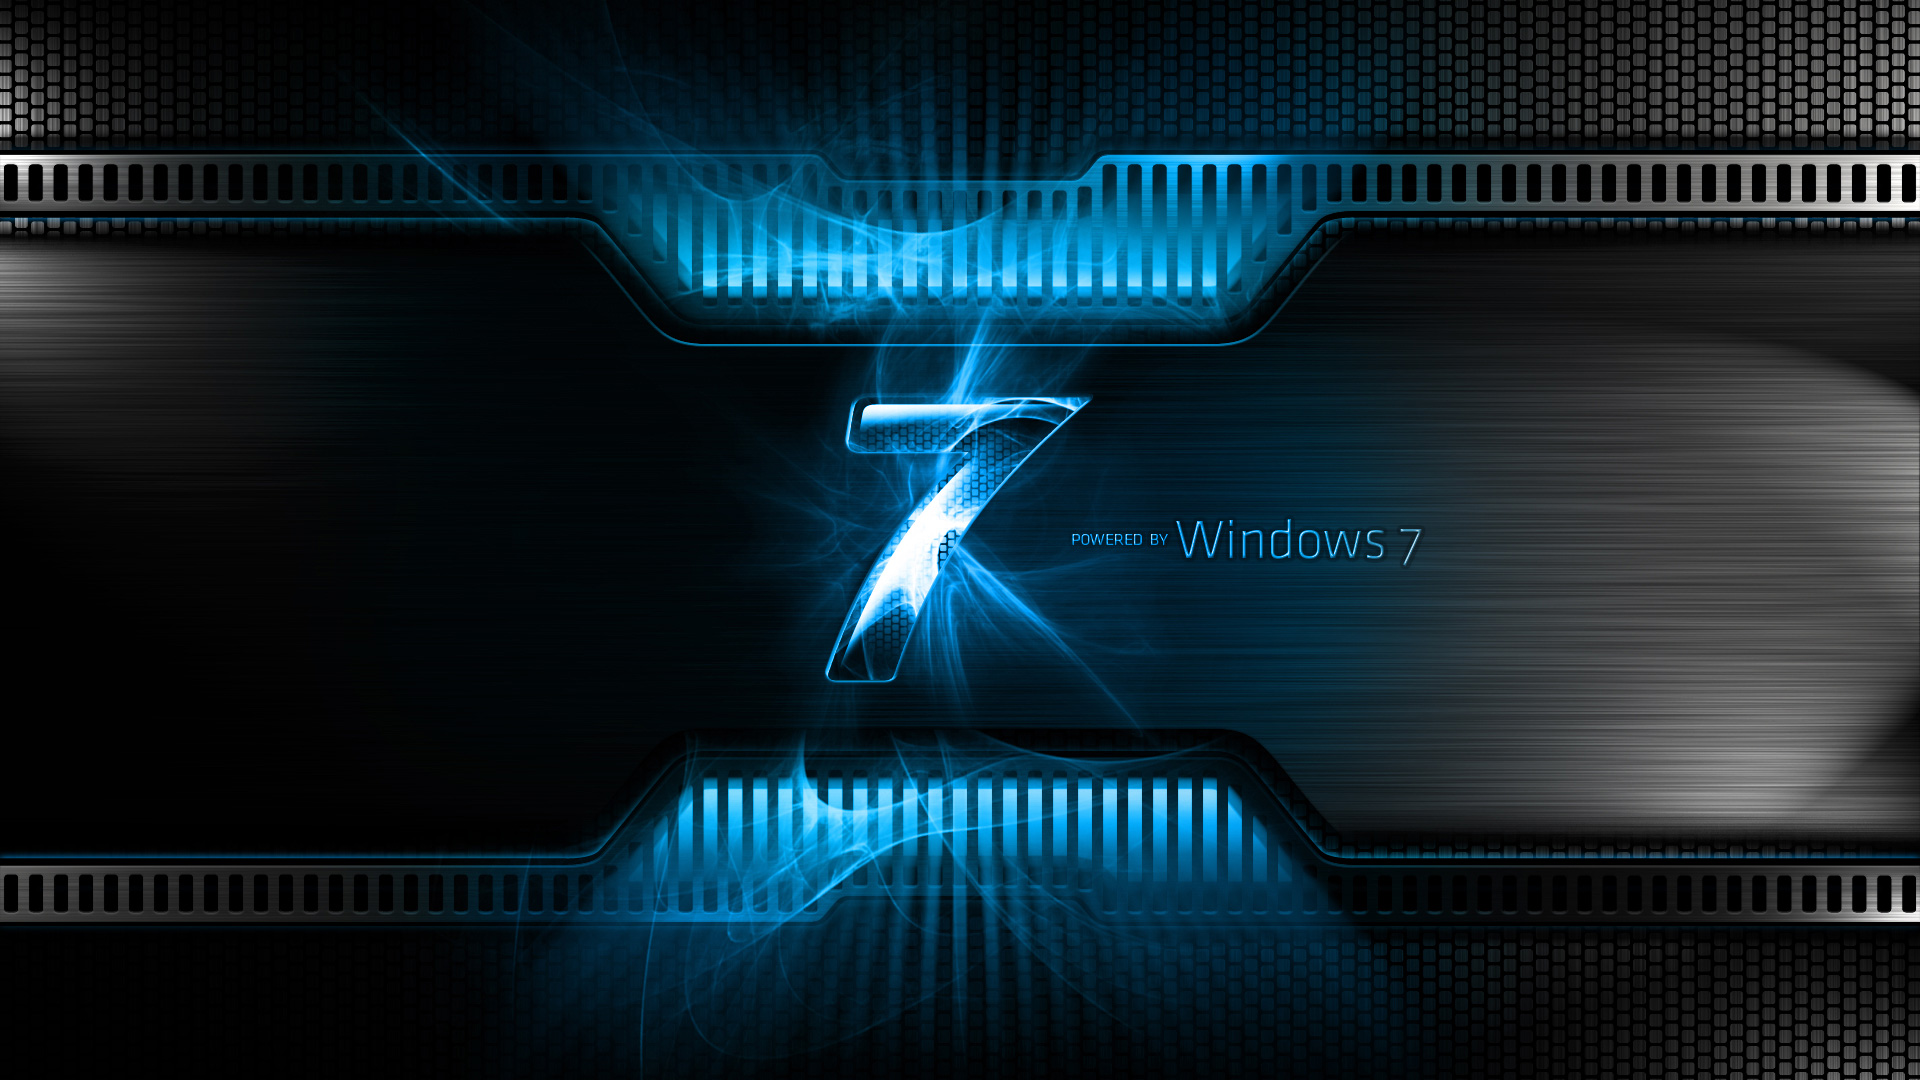 Windows 7 Latest Wallpapers HD